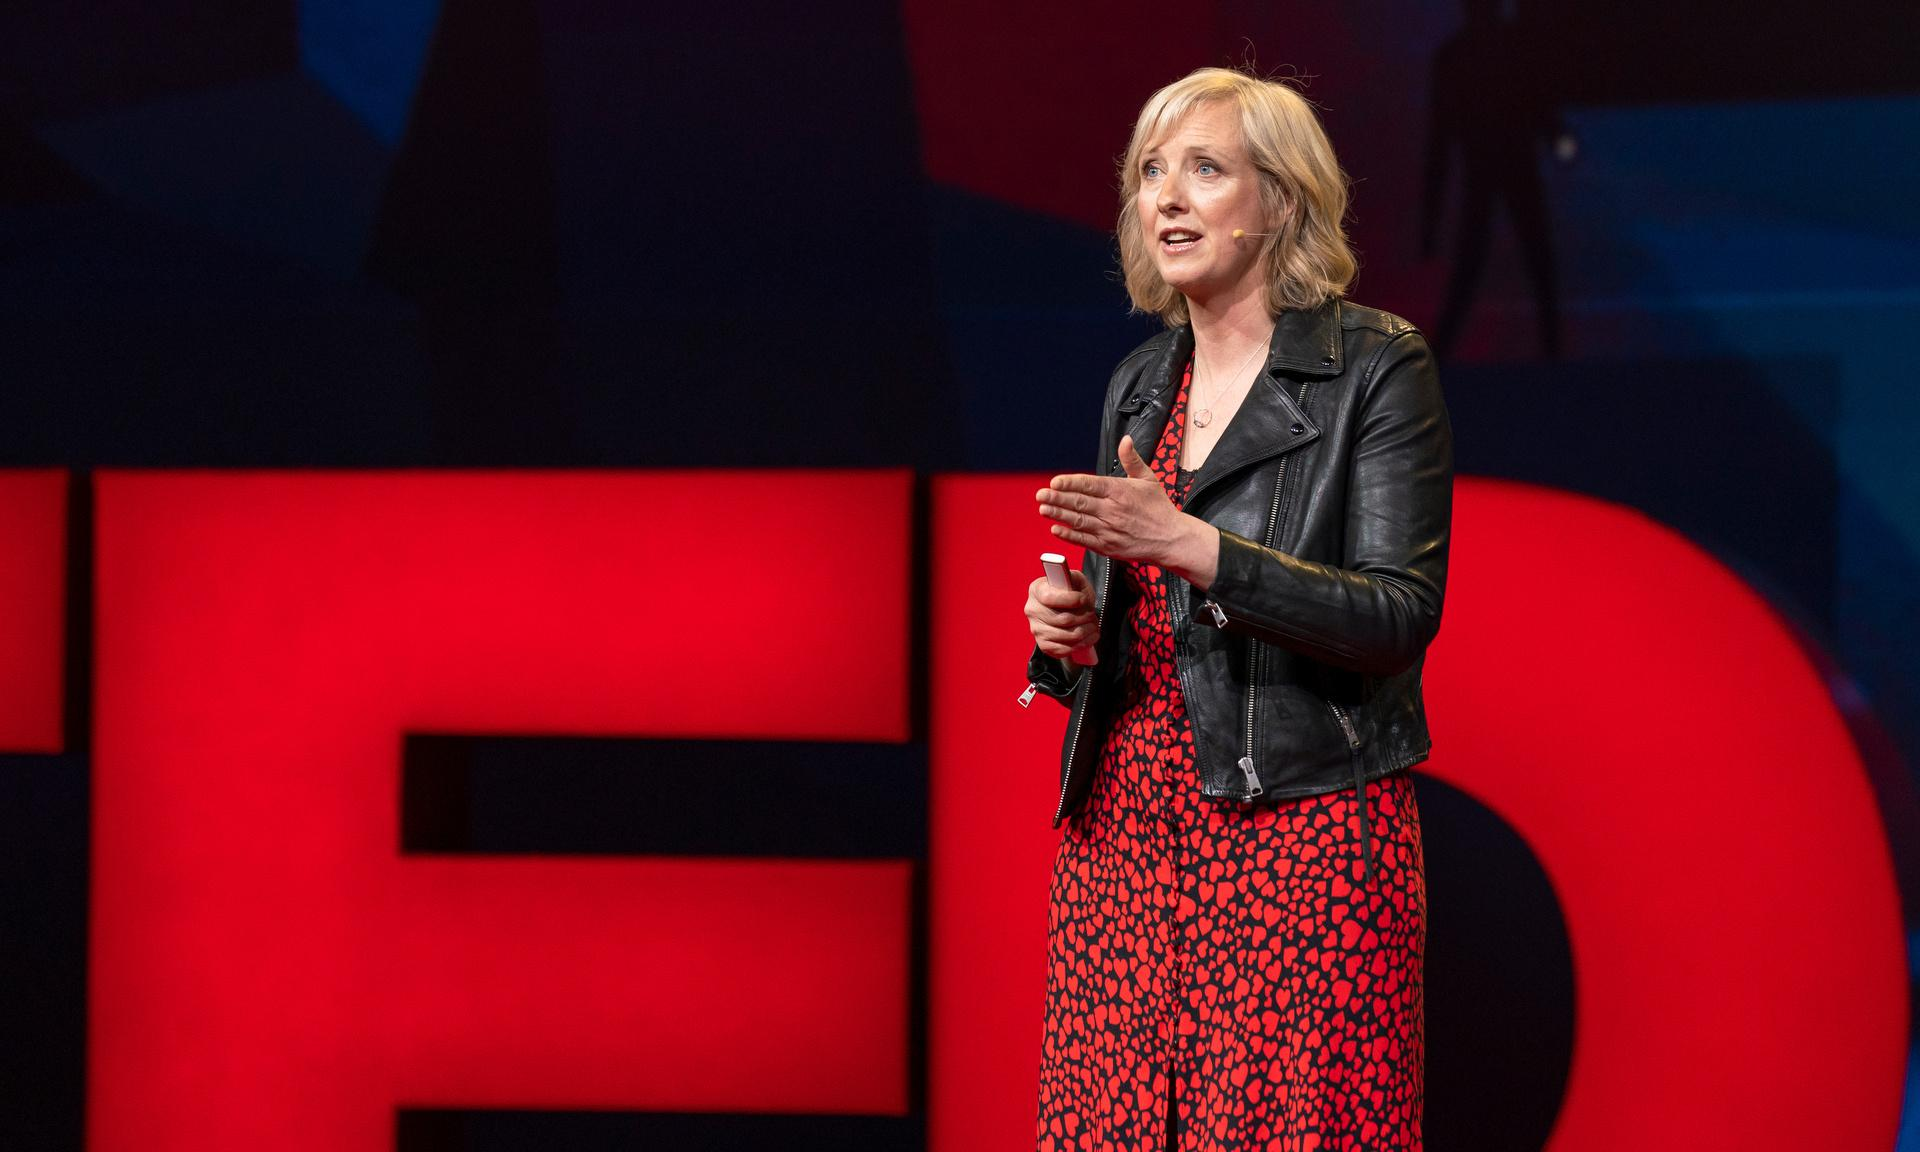 My TED talk: how I took on the tech titans in their lair